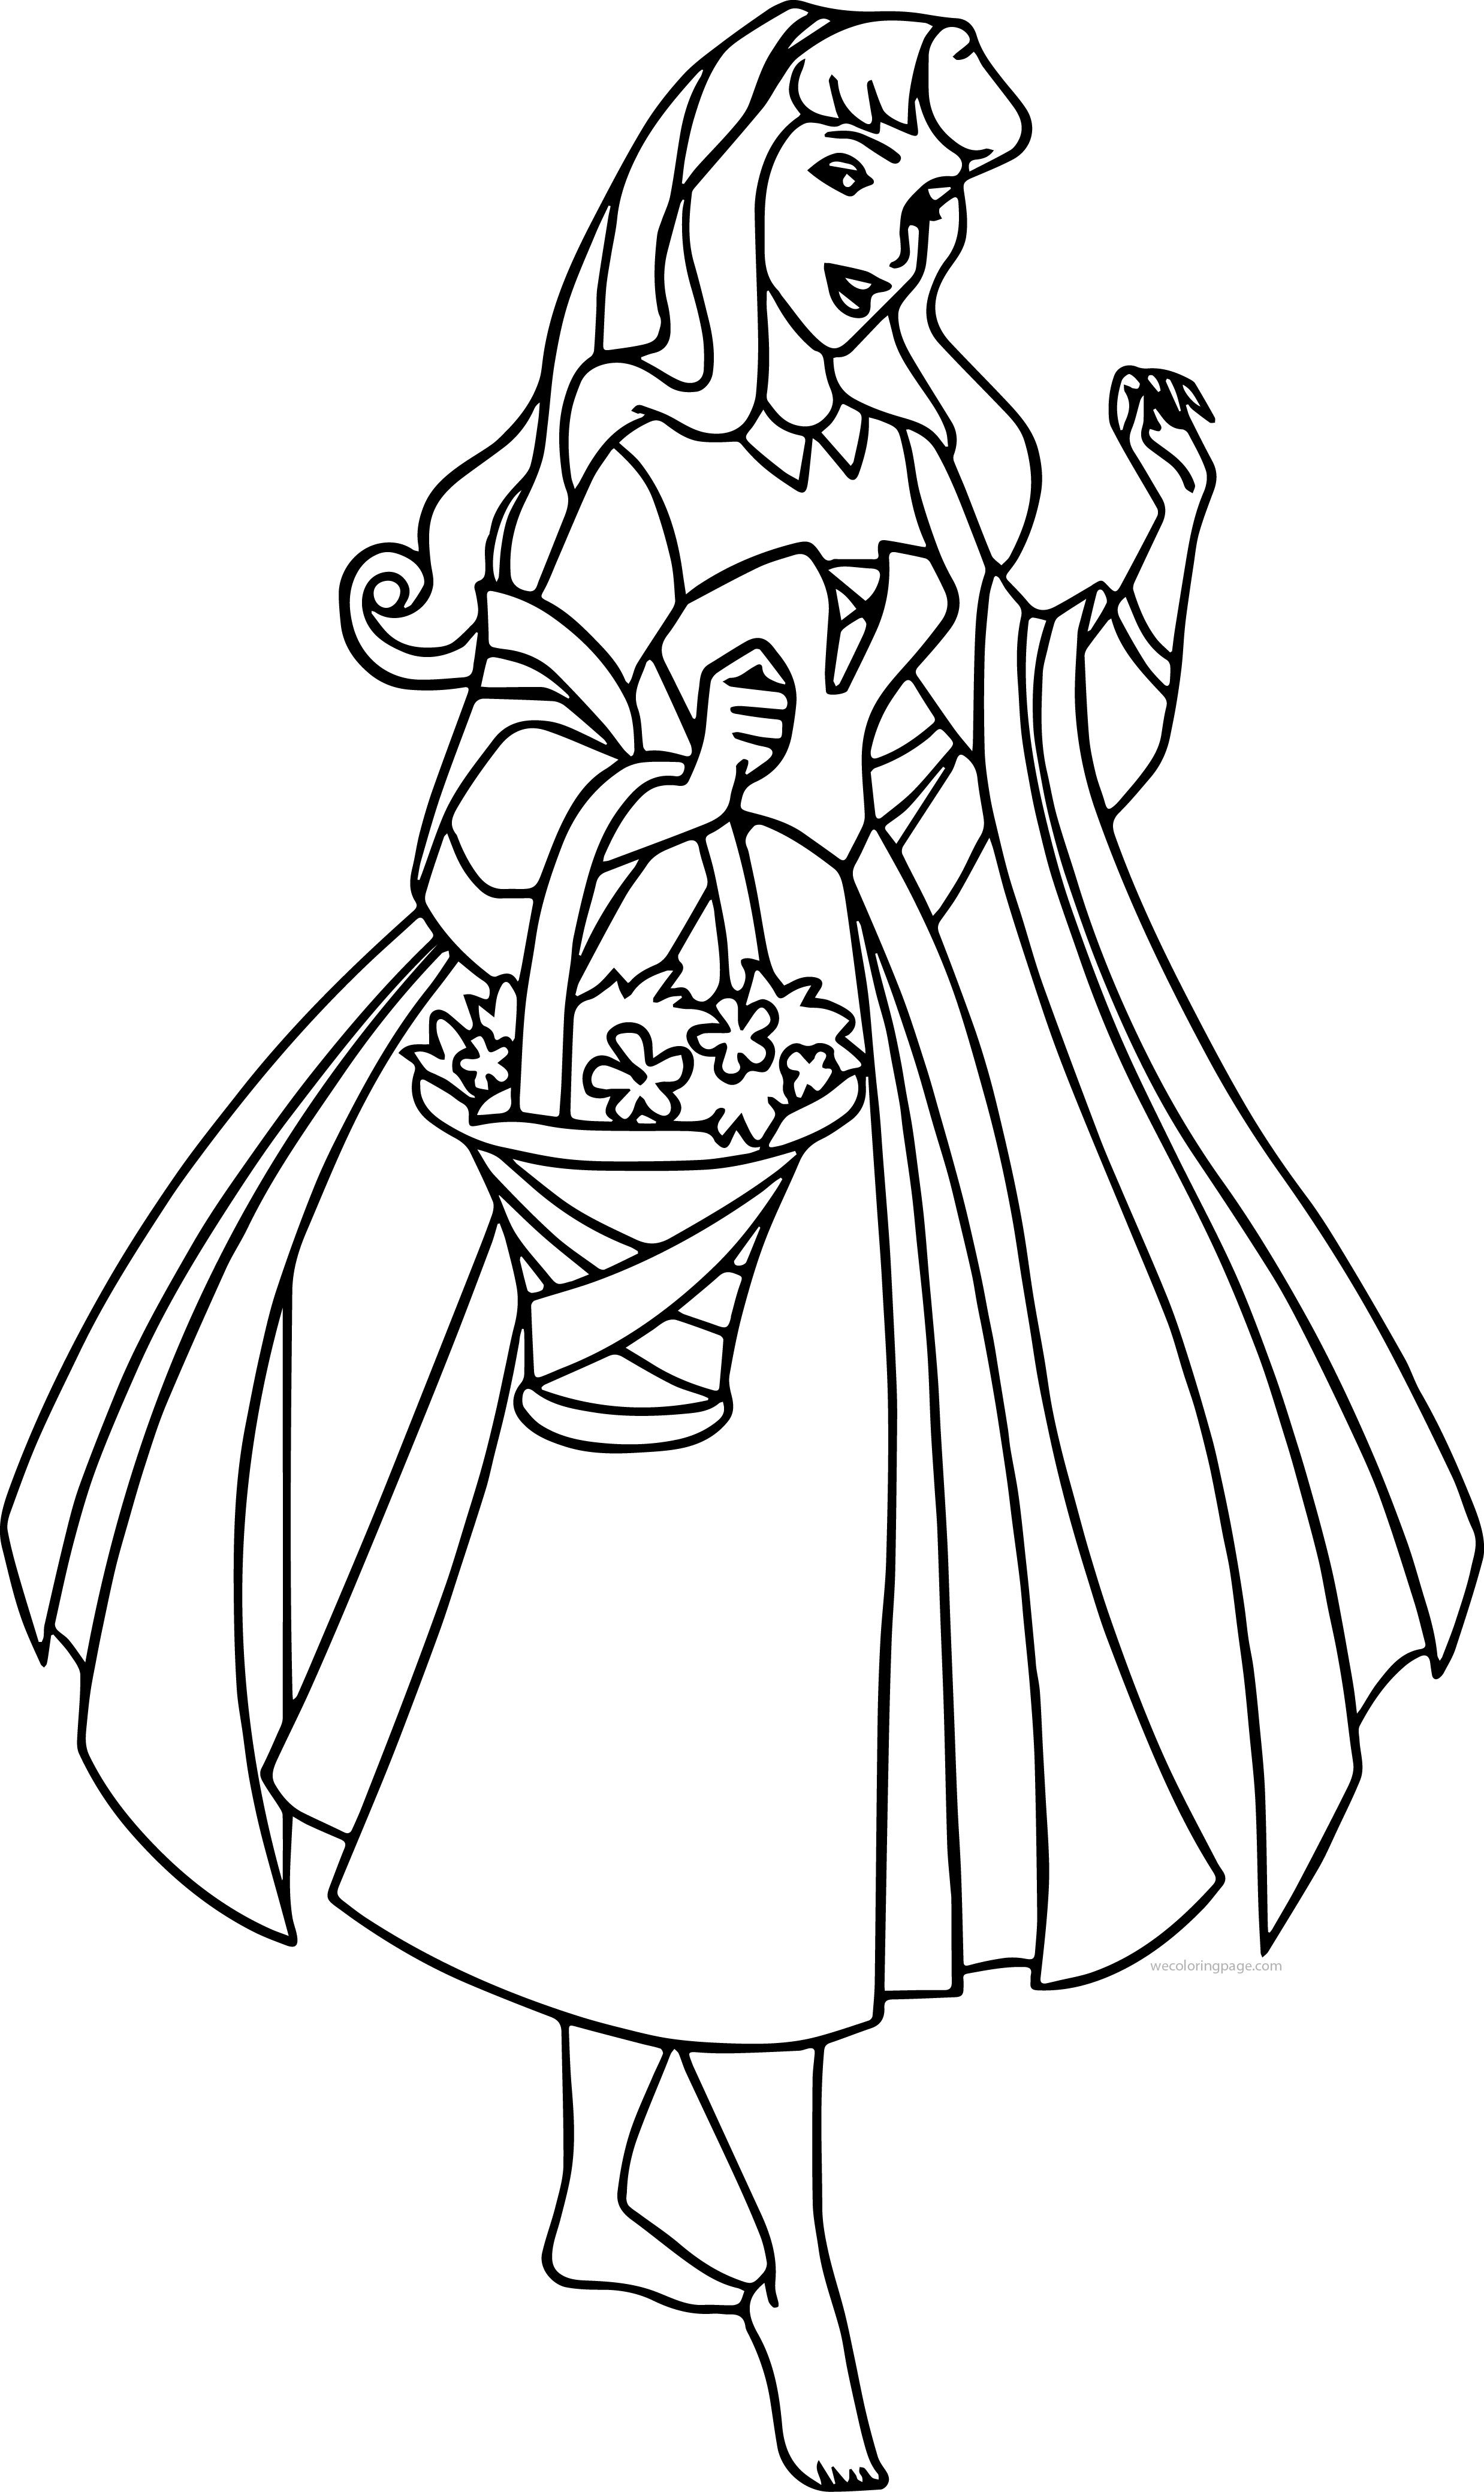 Disney Aurora Sleeping Beauty At Coloring Pages 09